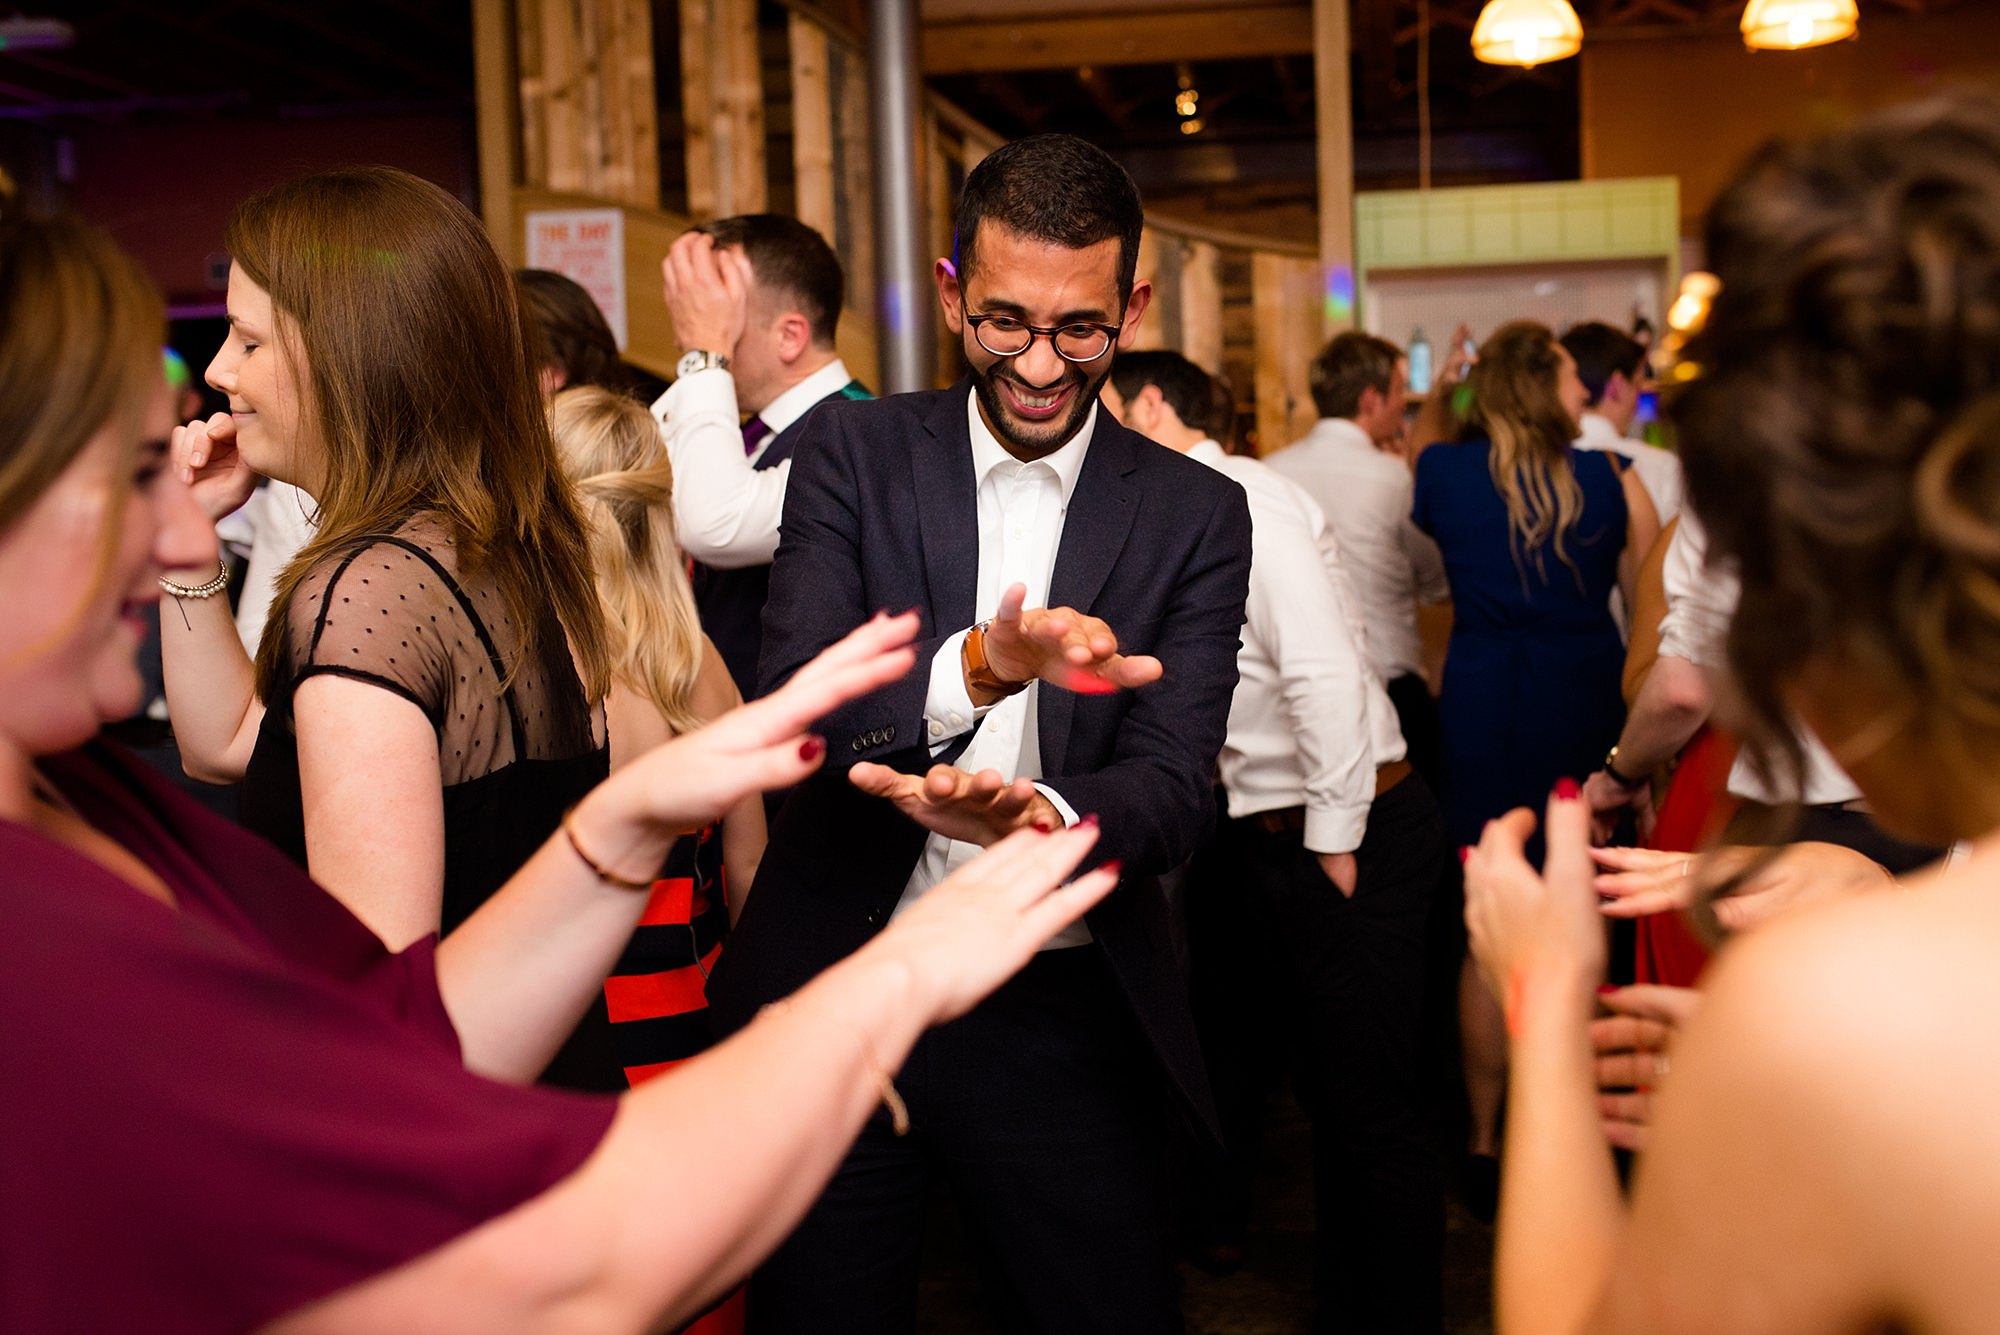 Fun London Wedding guests laugh as they dance together at brixton east wedding